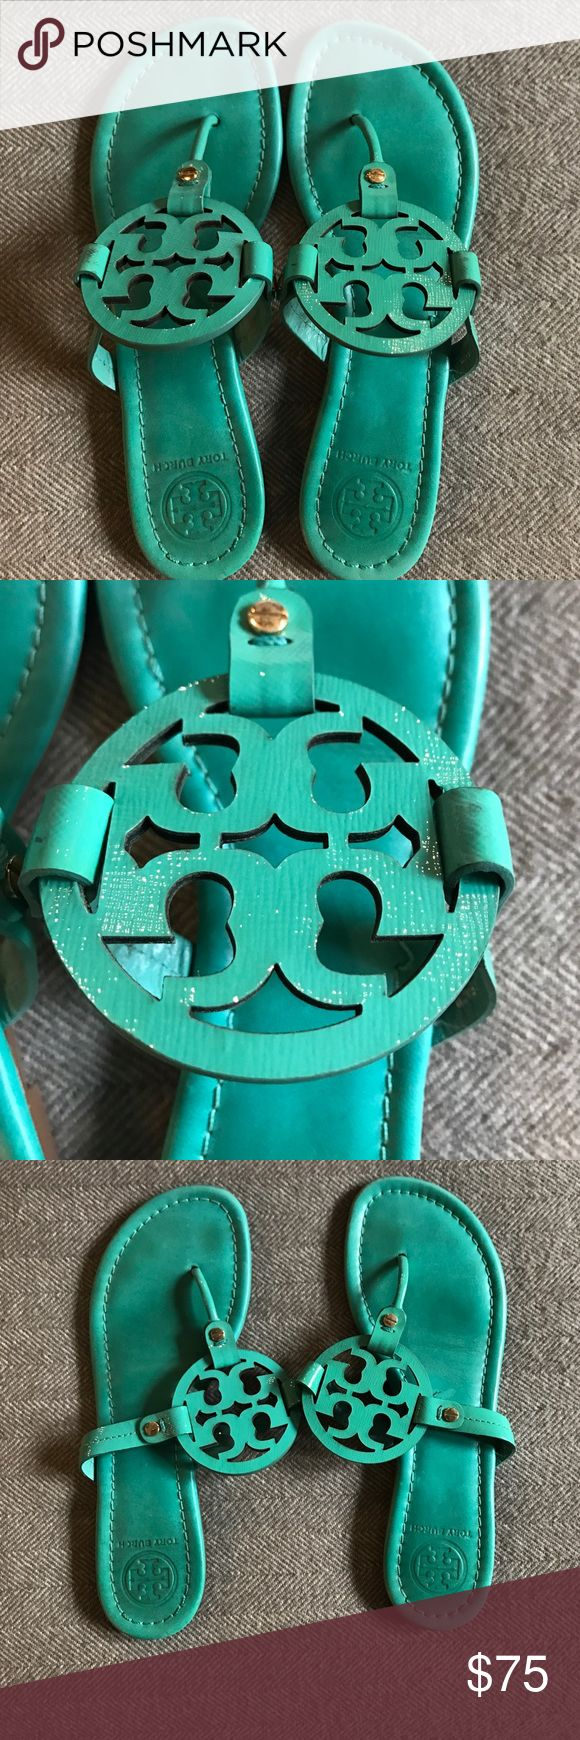 Tori Burch Gently Used Turquoise Sandal - Size 9 Tori Burch Gently Used Turquoise Sandal - Size 9 Tory Burch Shoes Sandals